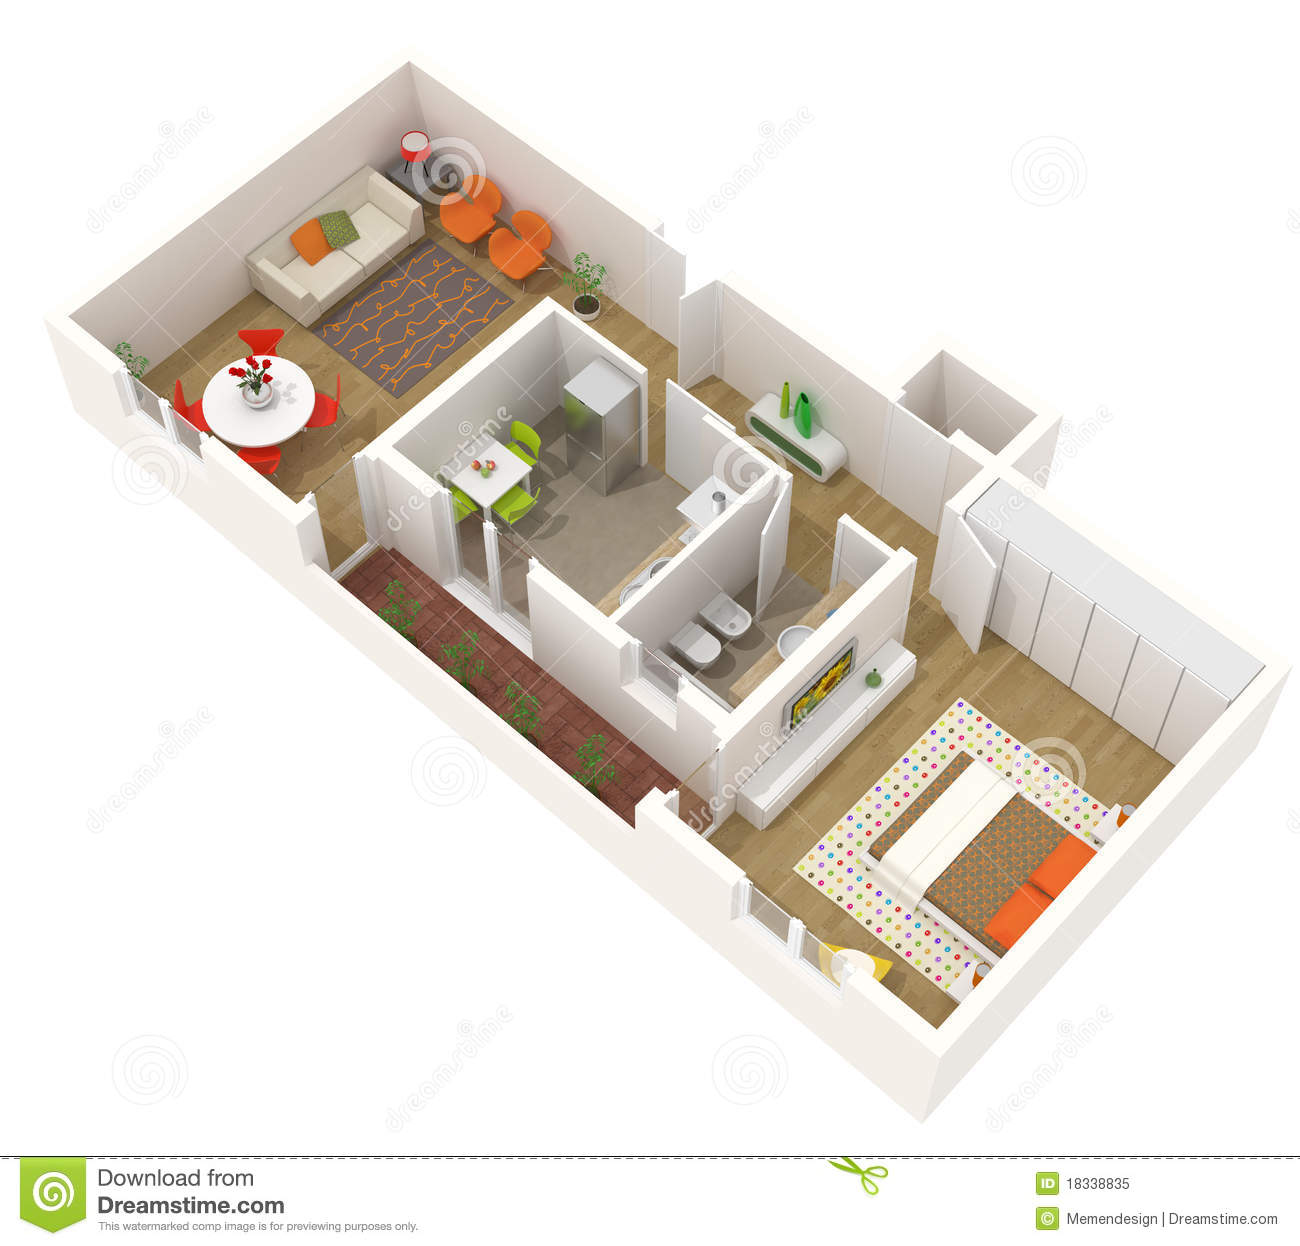 Apartment design 3d floor plan stock illustration 3d apartment layout